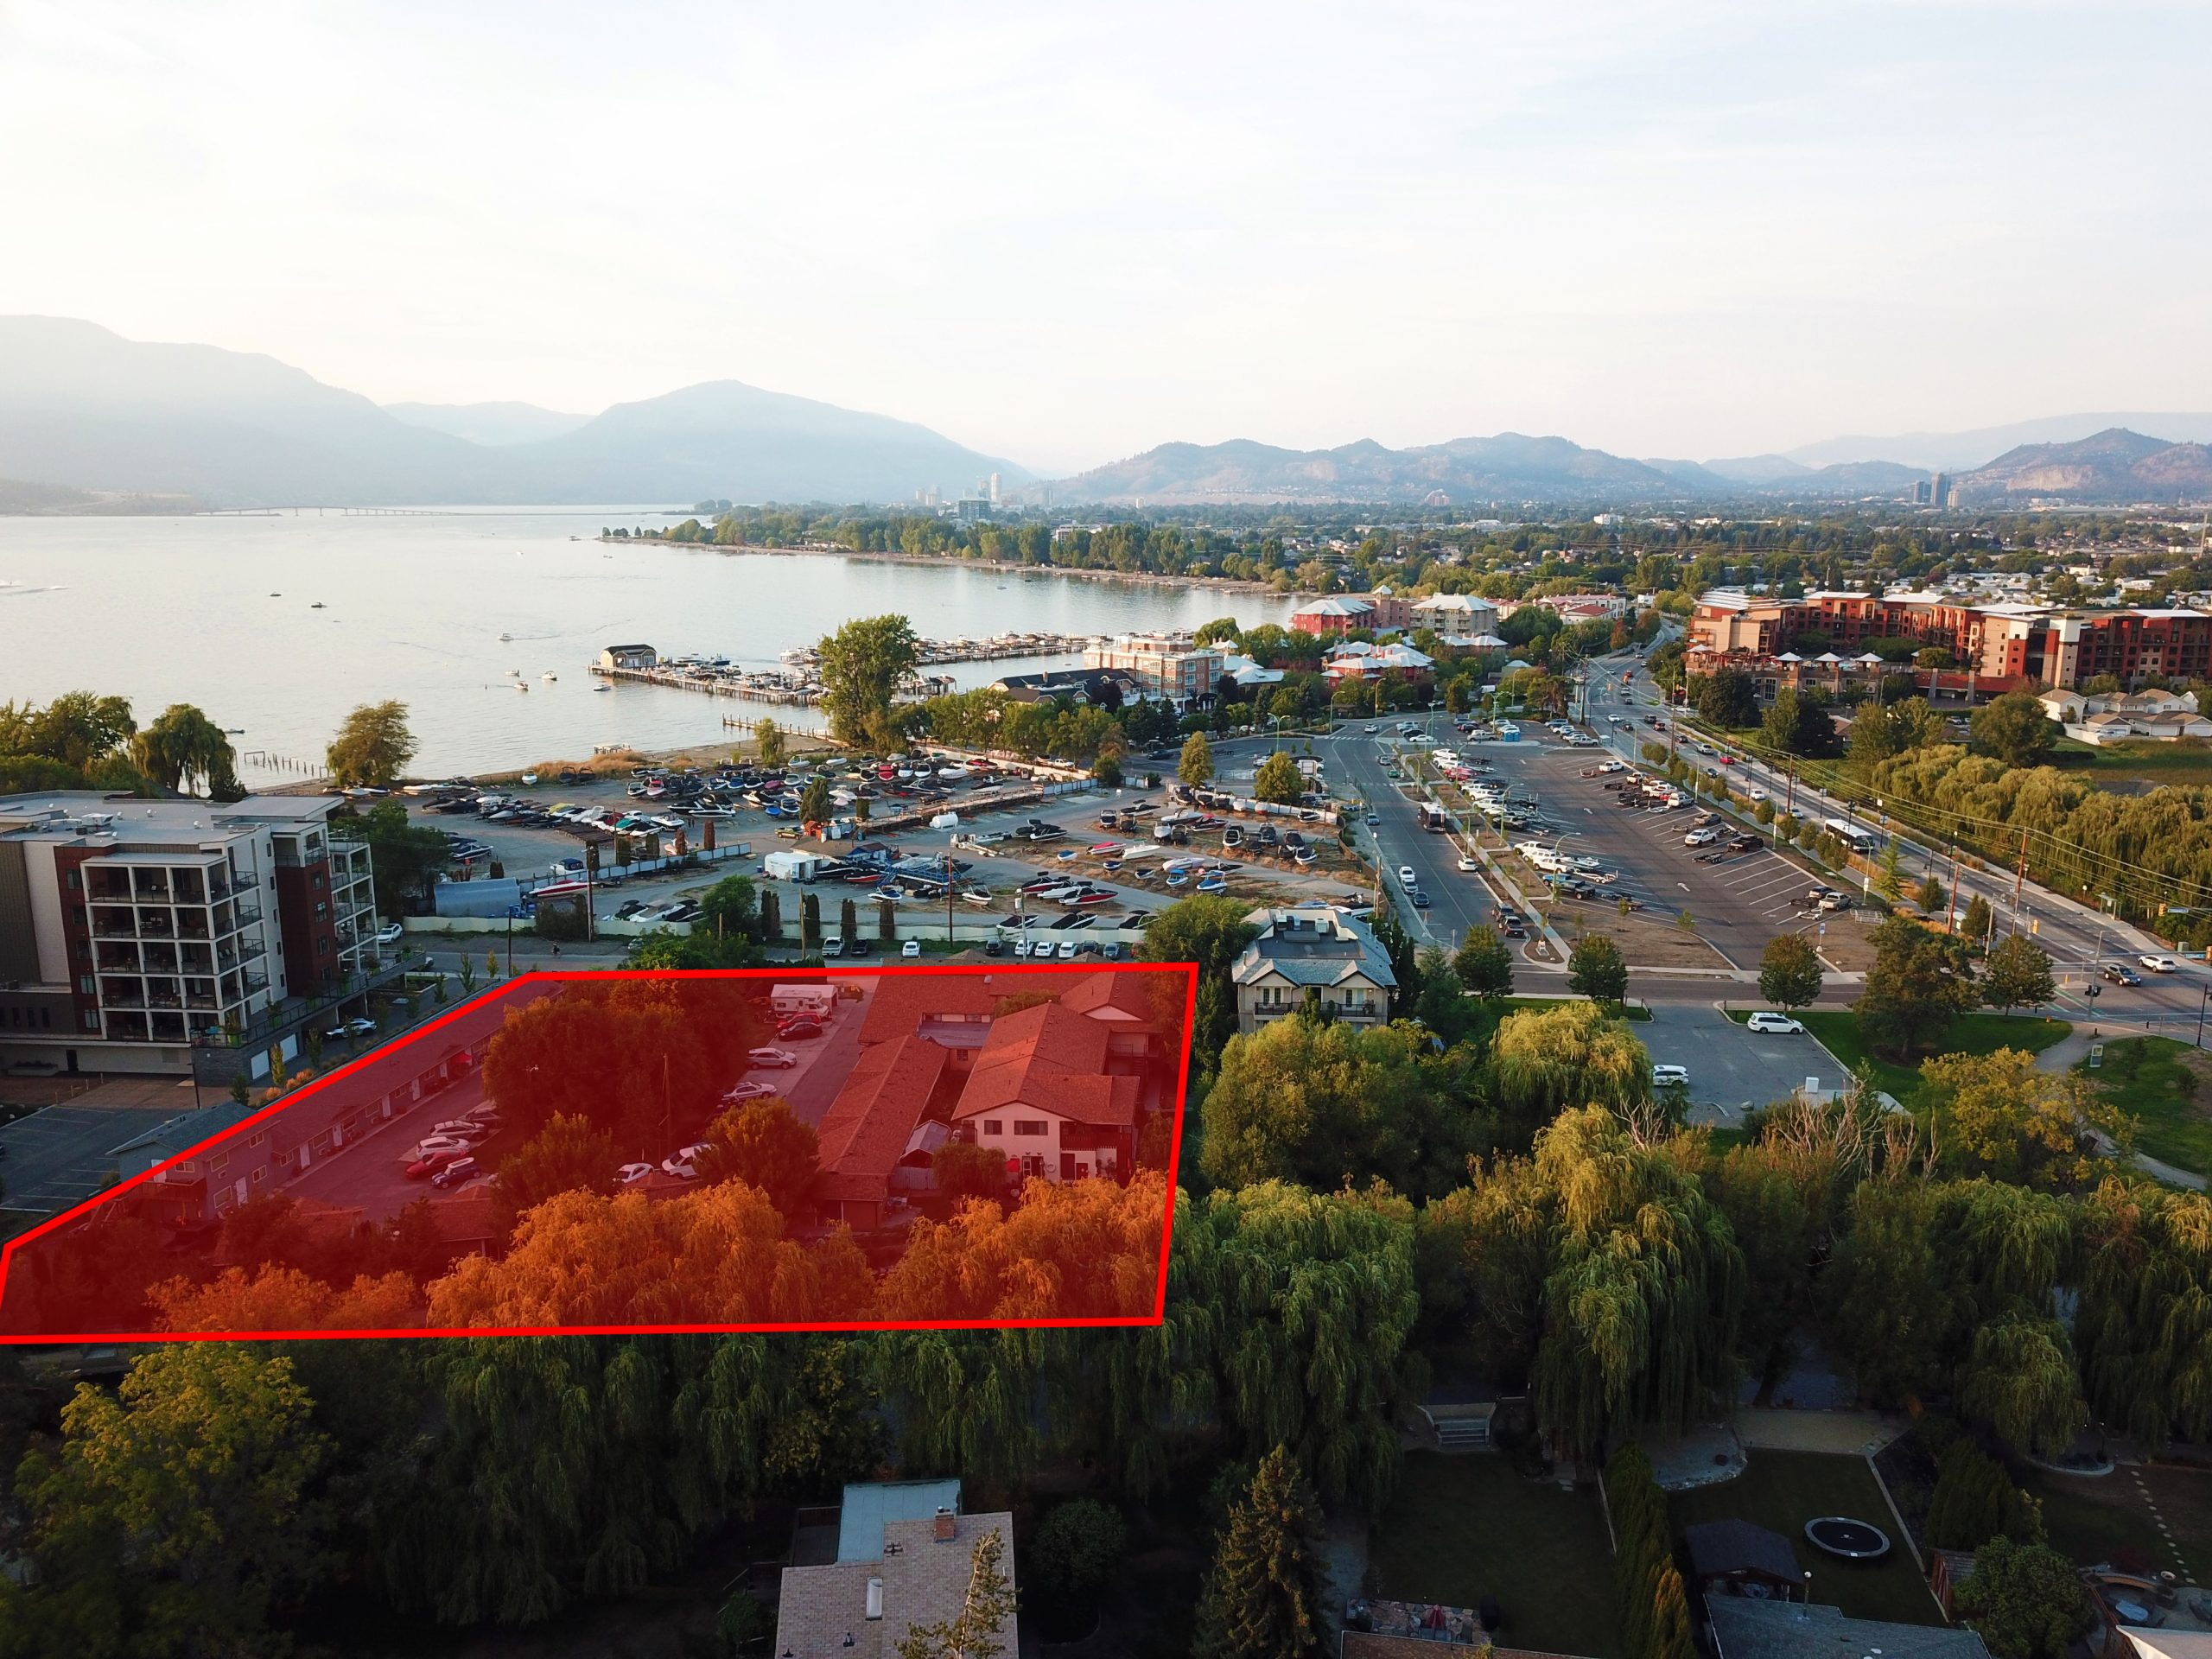 549 Truswell Road, Kelowna, BC - Lower Mission Redevelopment Site with Holding Income